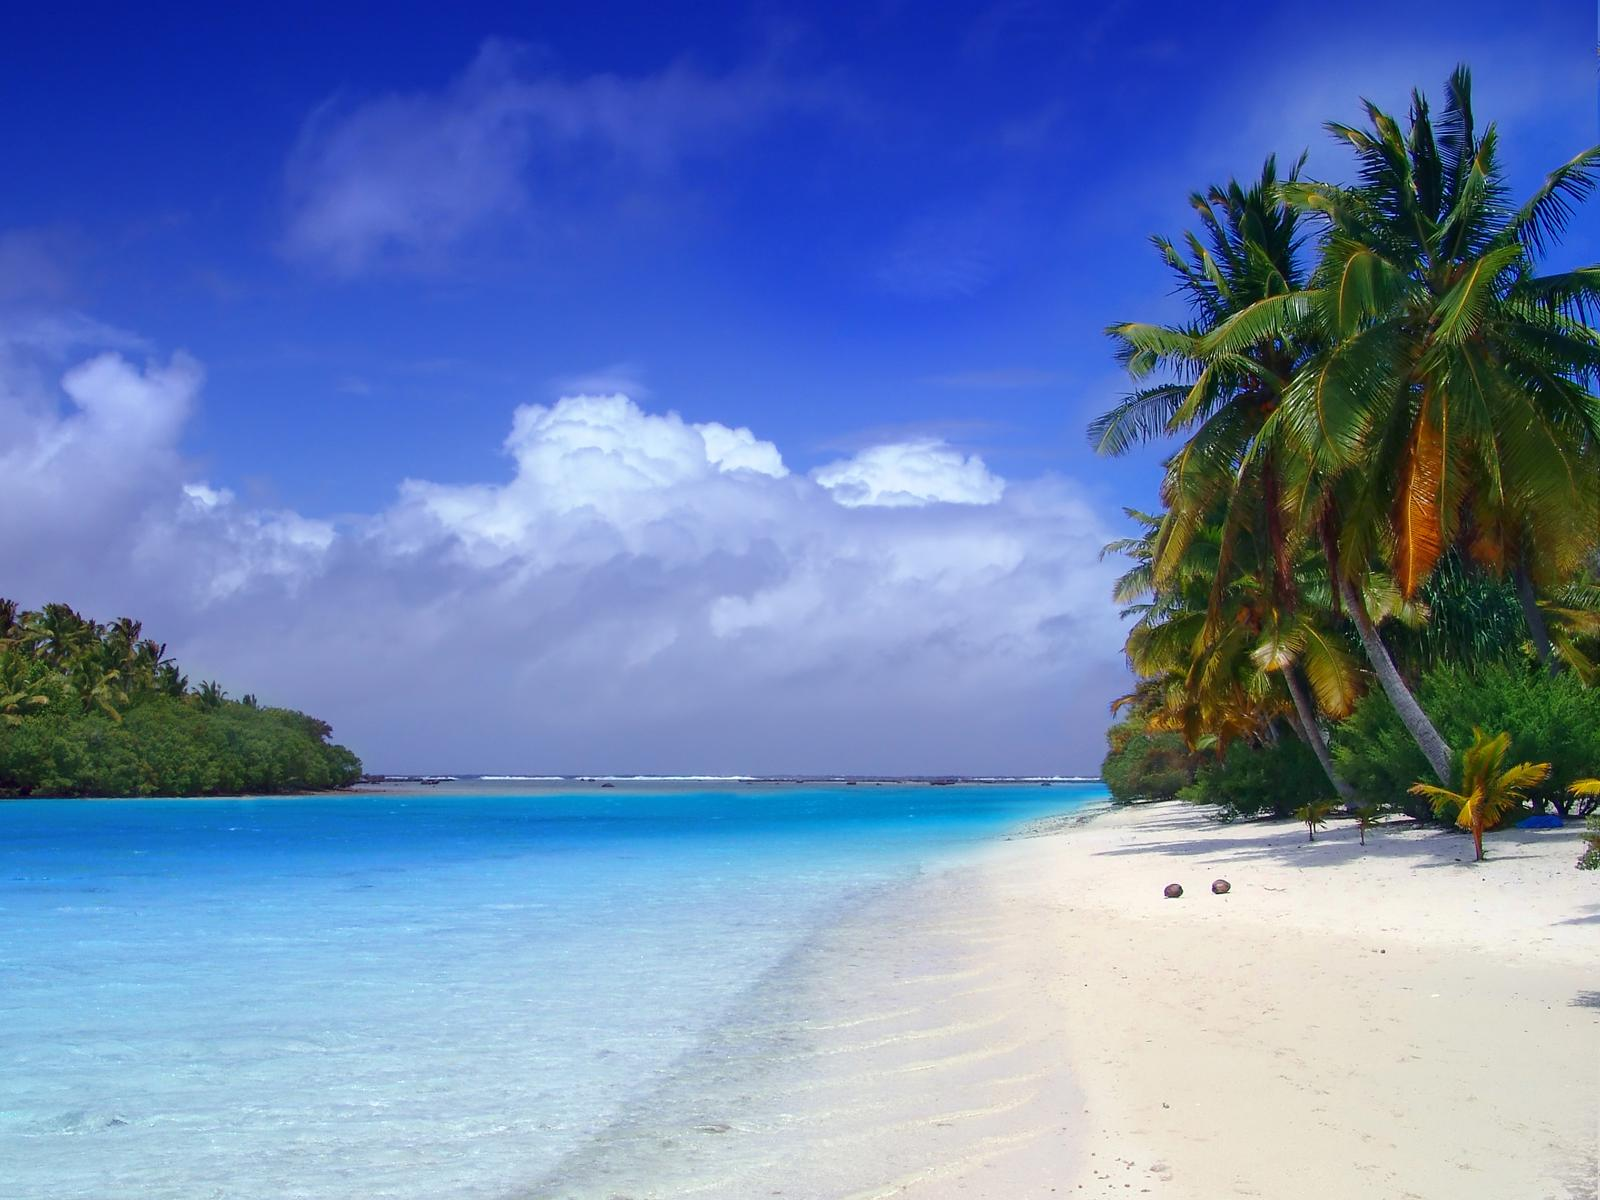 20 tropical backgrounds - photo #6